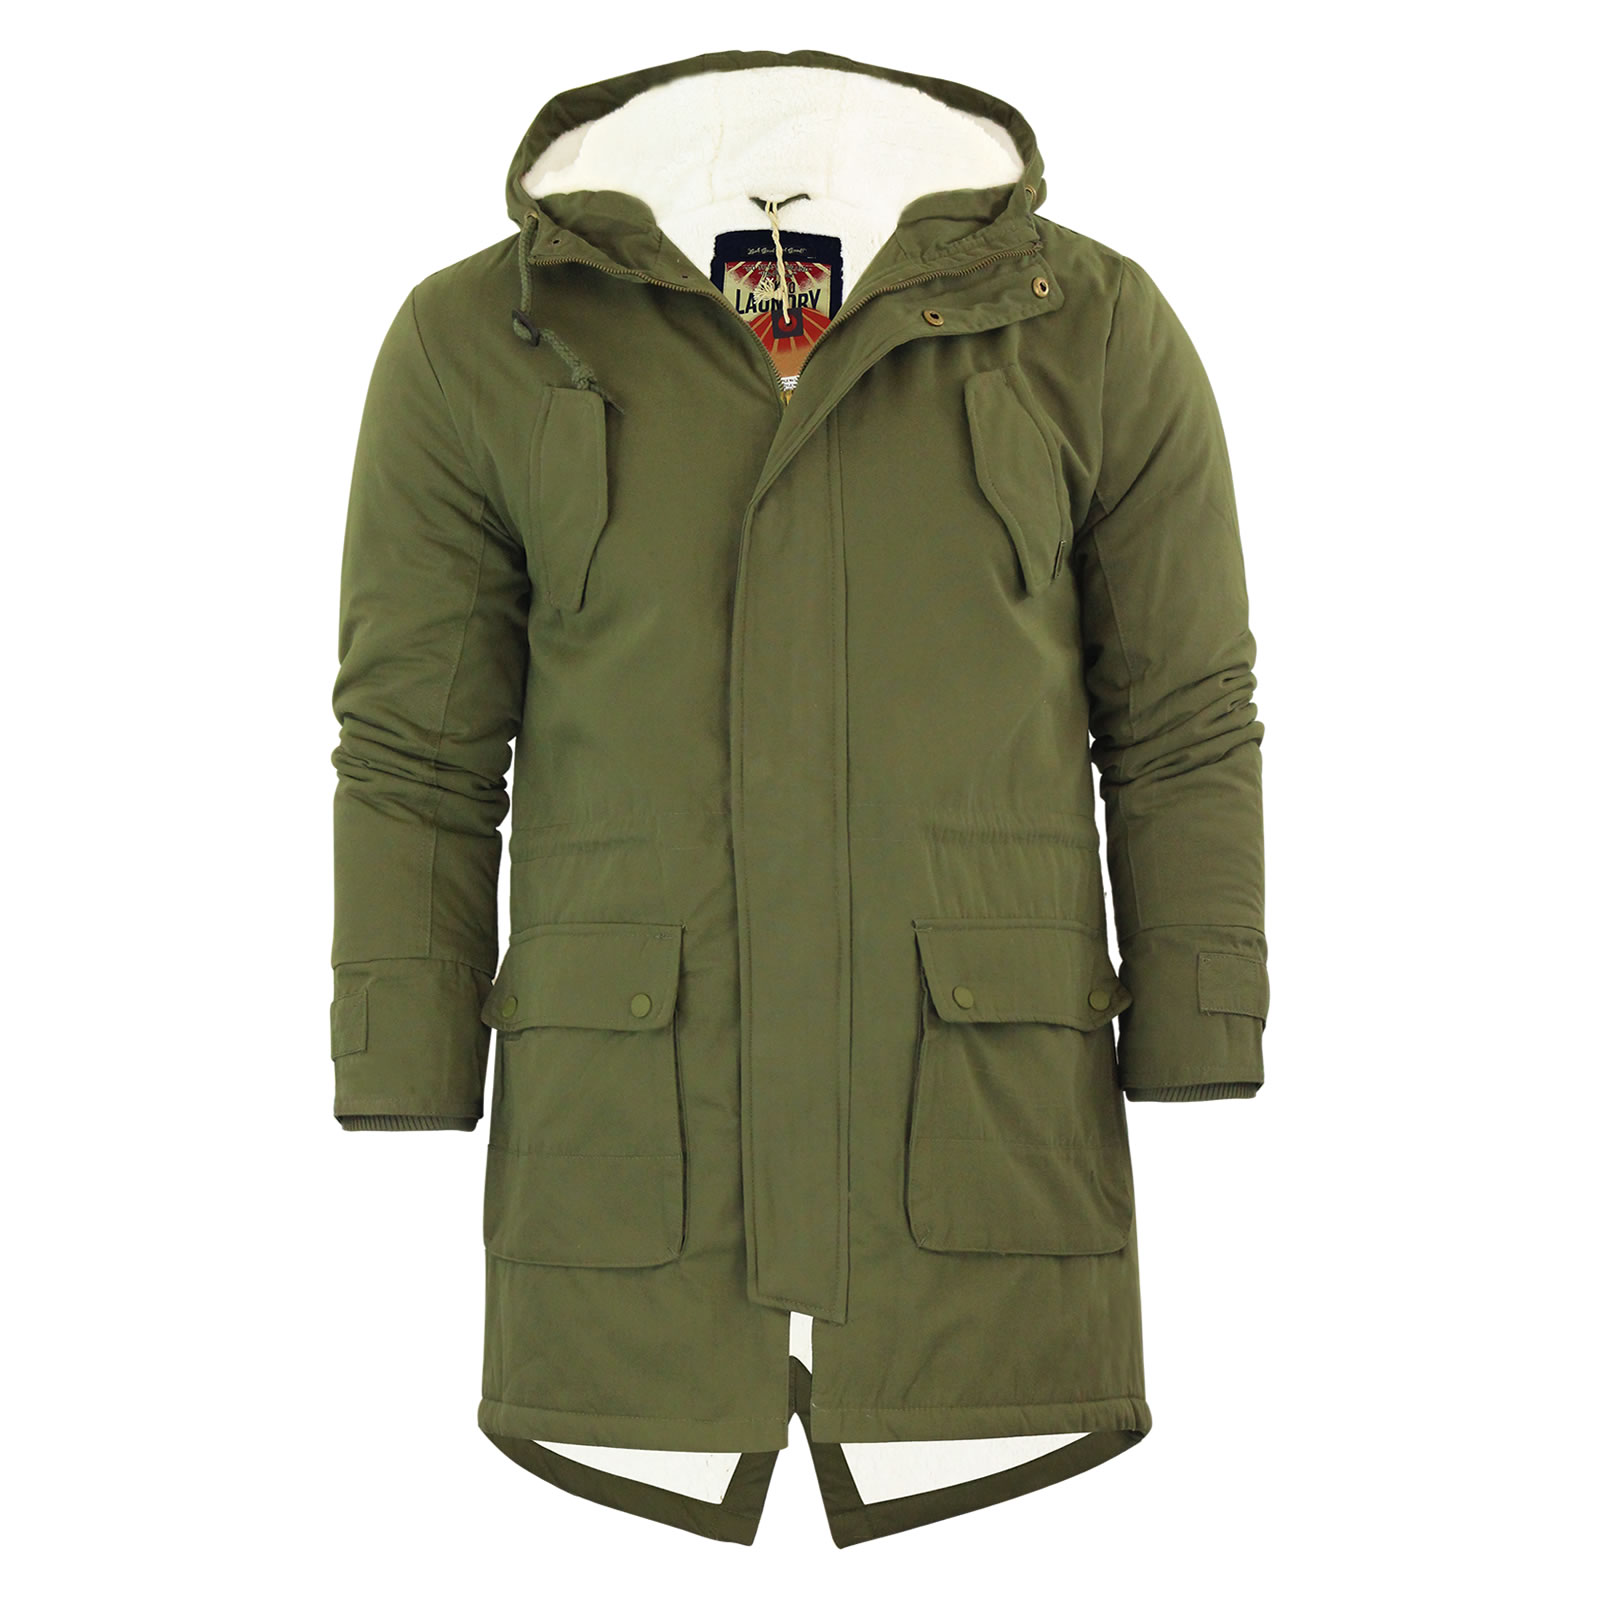 Khaki parka coat Save. Was £ Now £ Nine by Savannah Miller Khaki faux fur lined hooded parka coat Save. Was £ Now £ Tog 24 Rouge red 'Essential' waterproof parka jacket Save. Was £ Now £ Maine New England Navy showerproof parka jacket.